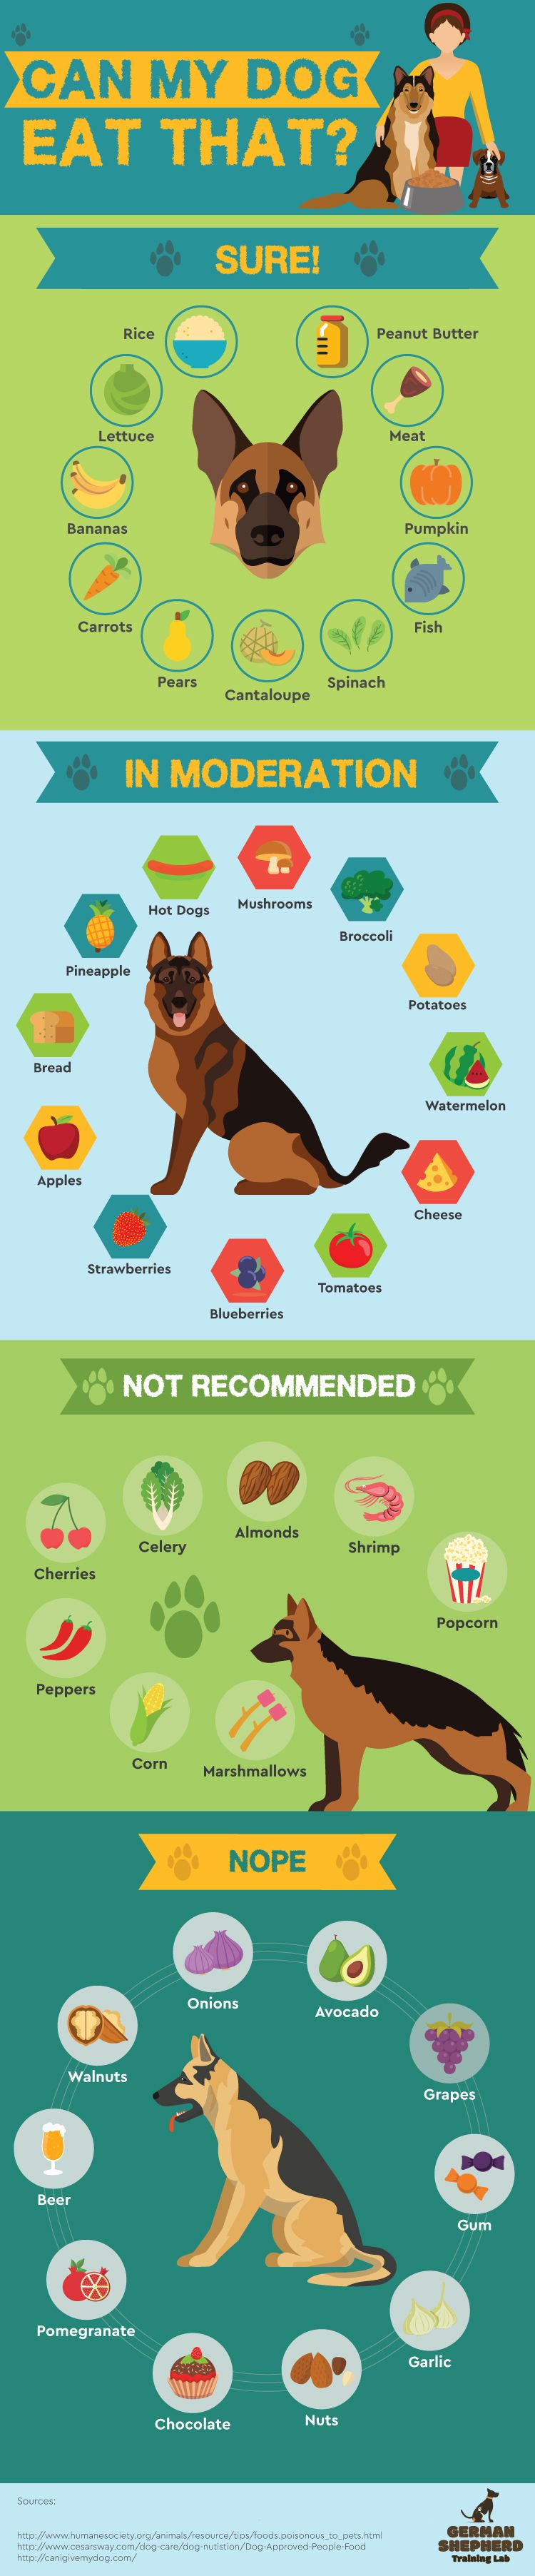 Liquid Human Foods That Dogs Can Have